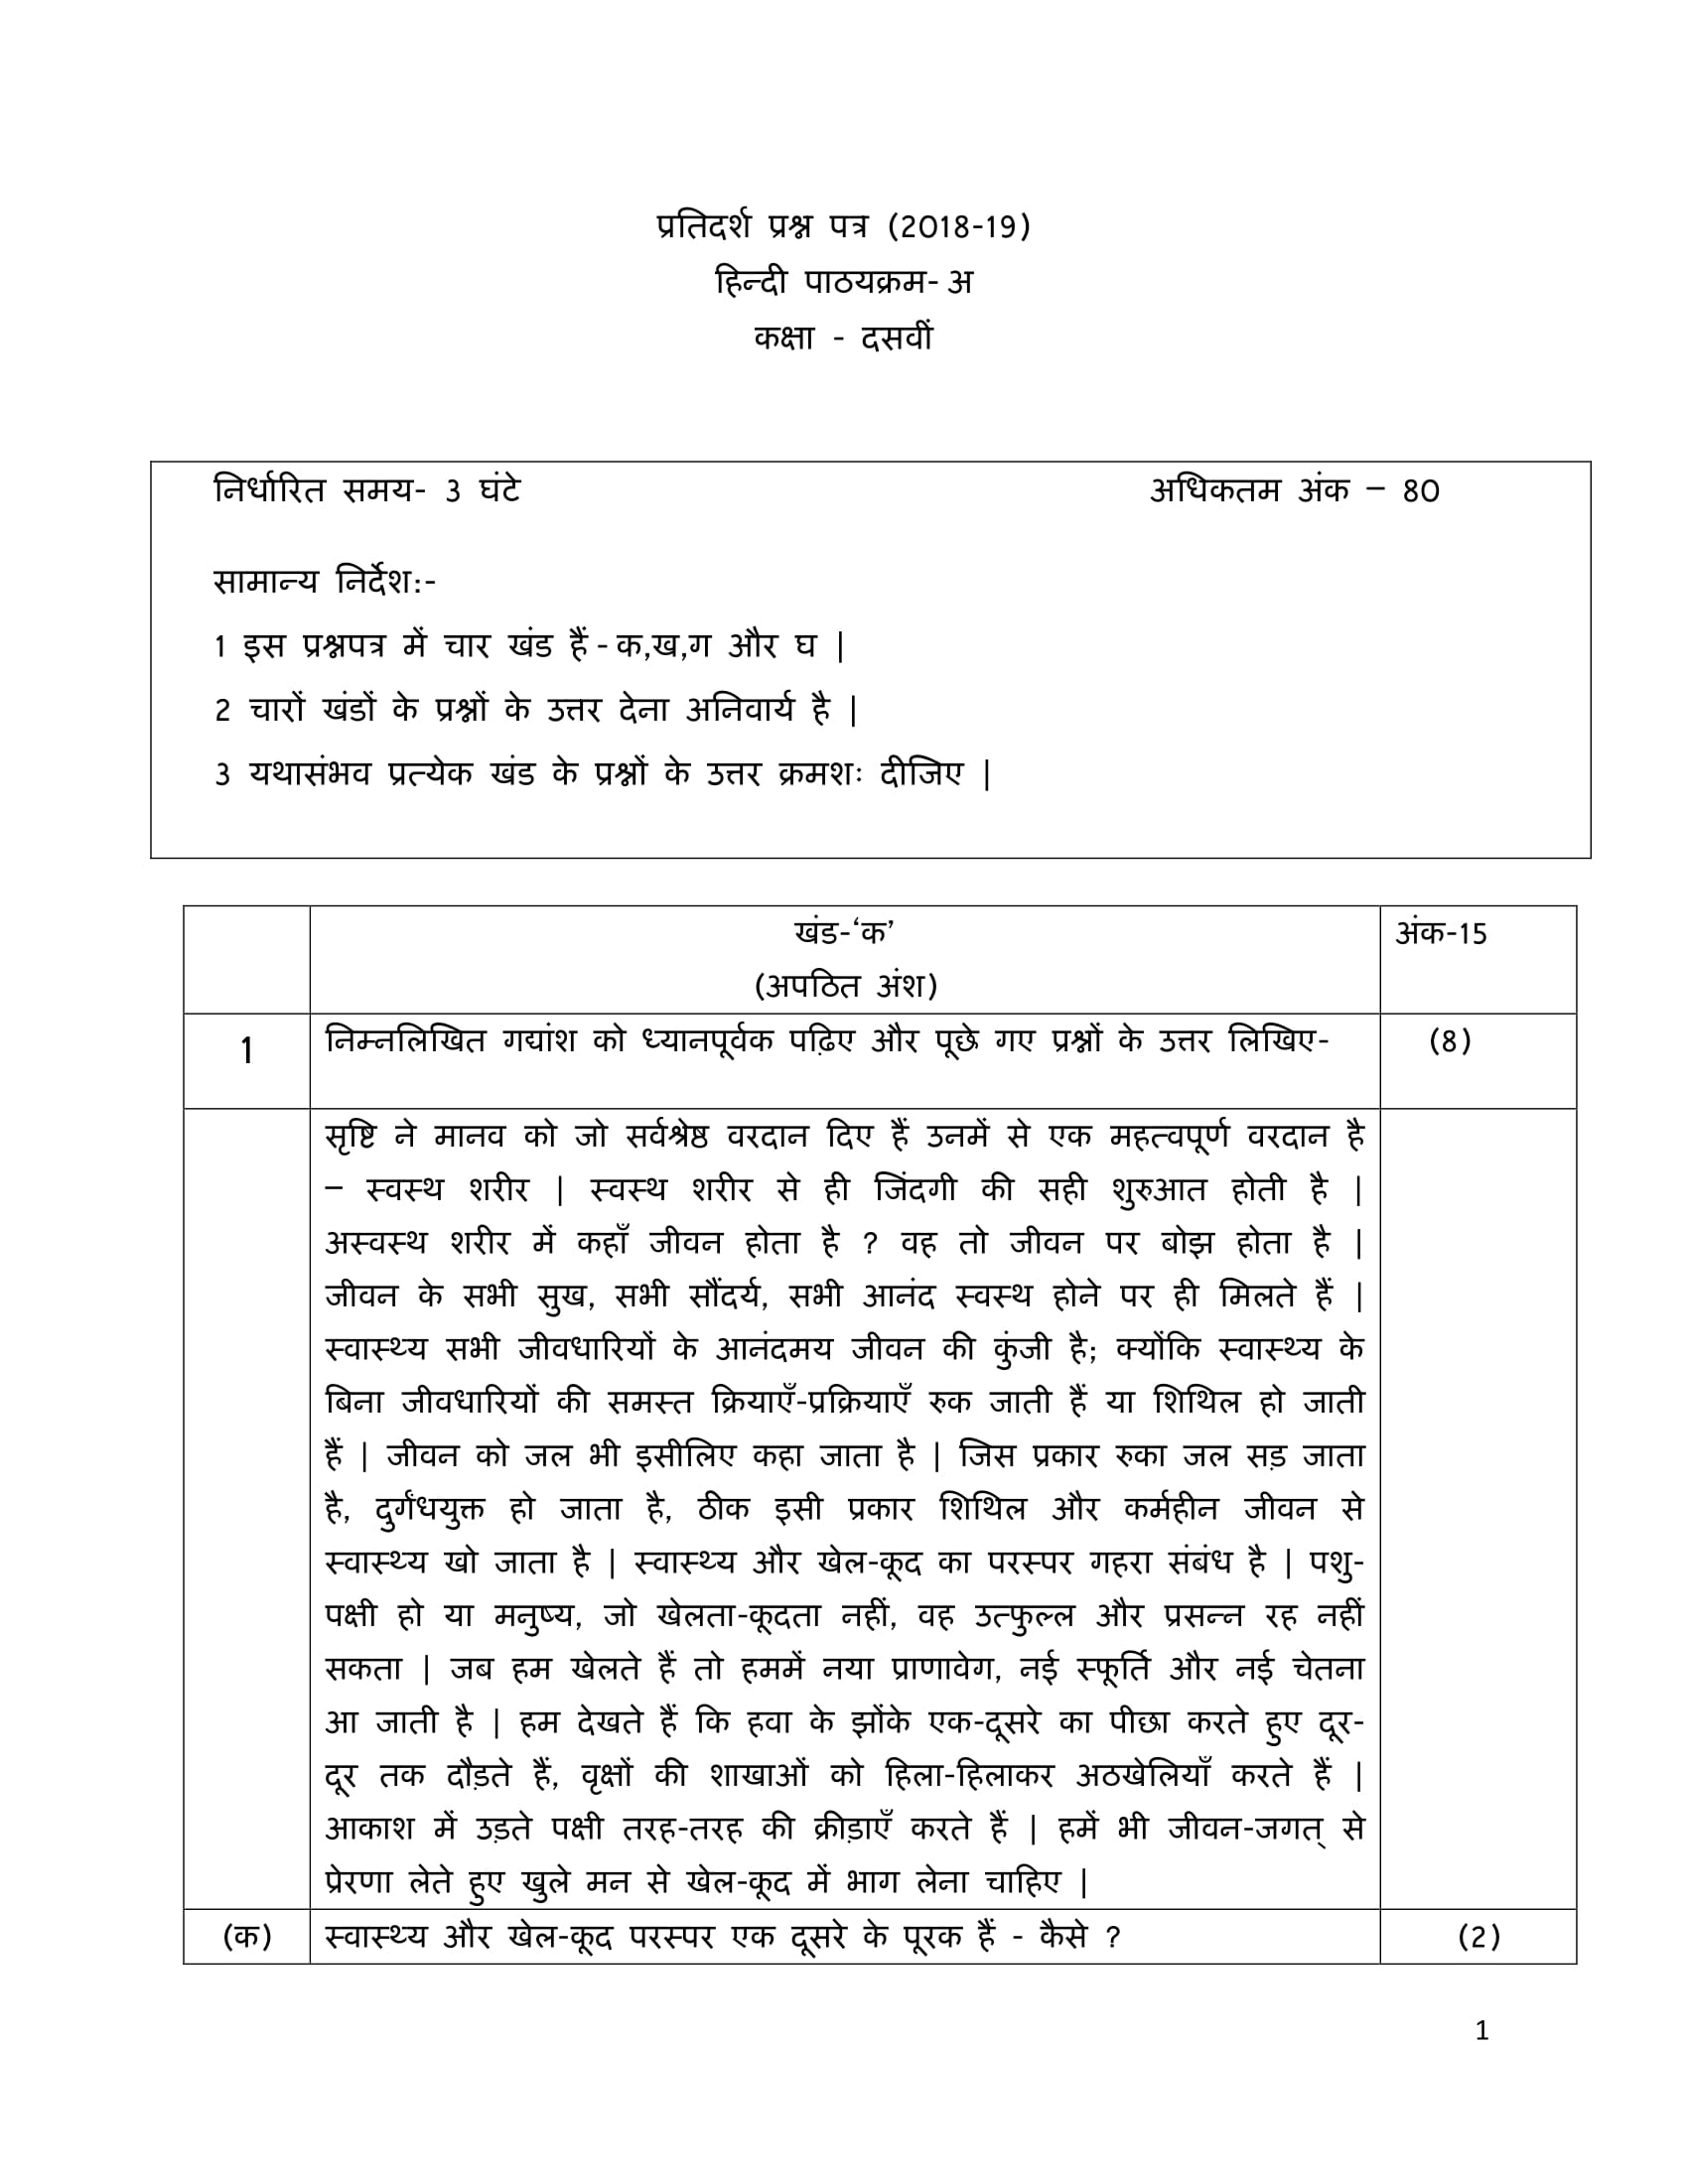 Hindi A Class 10 CBSE Solved Paper with Answers | Marking Scheme PDF Download 2019 - Official